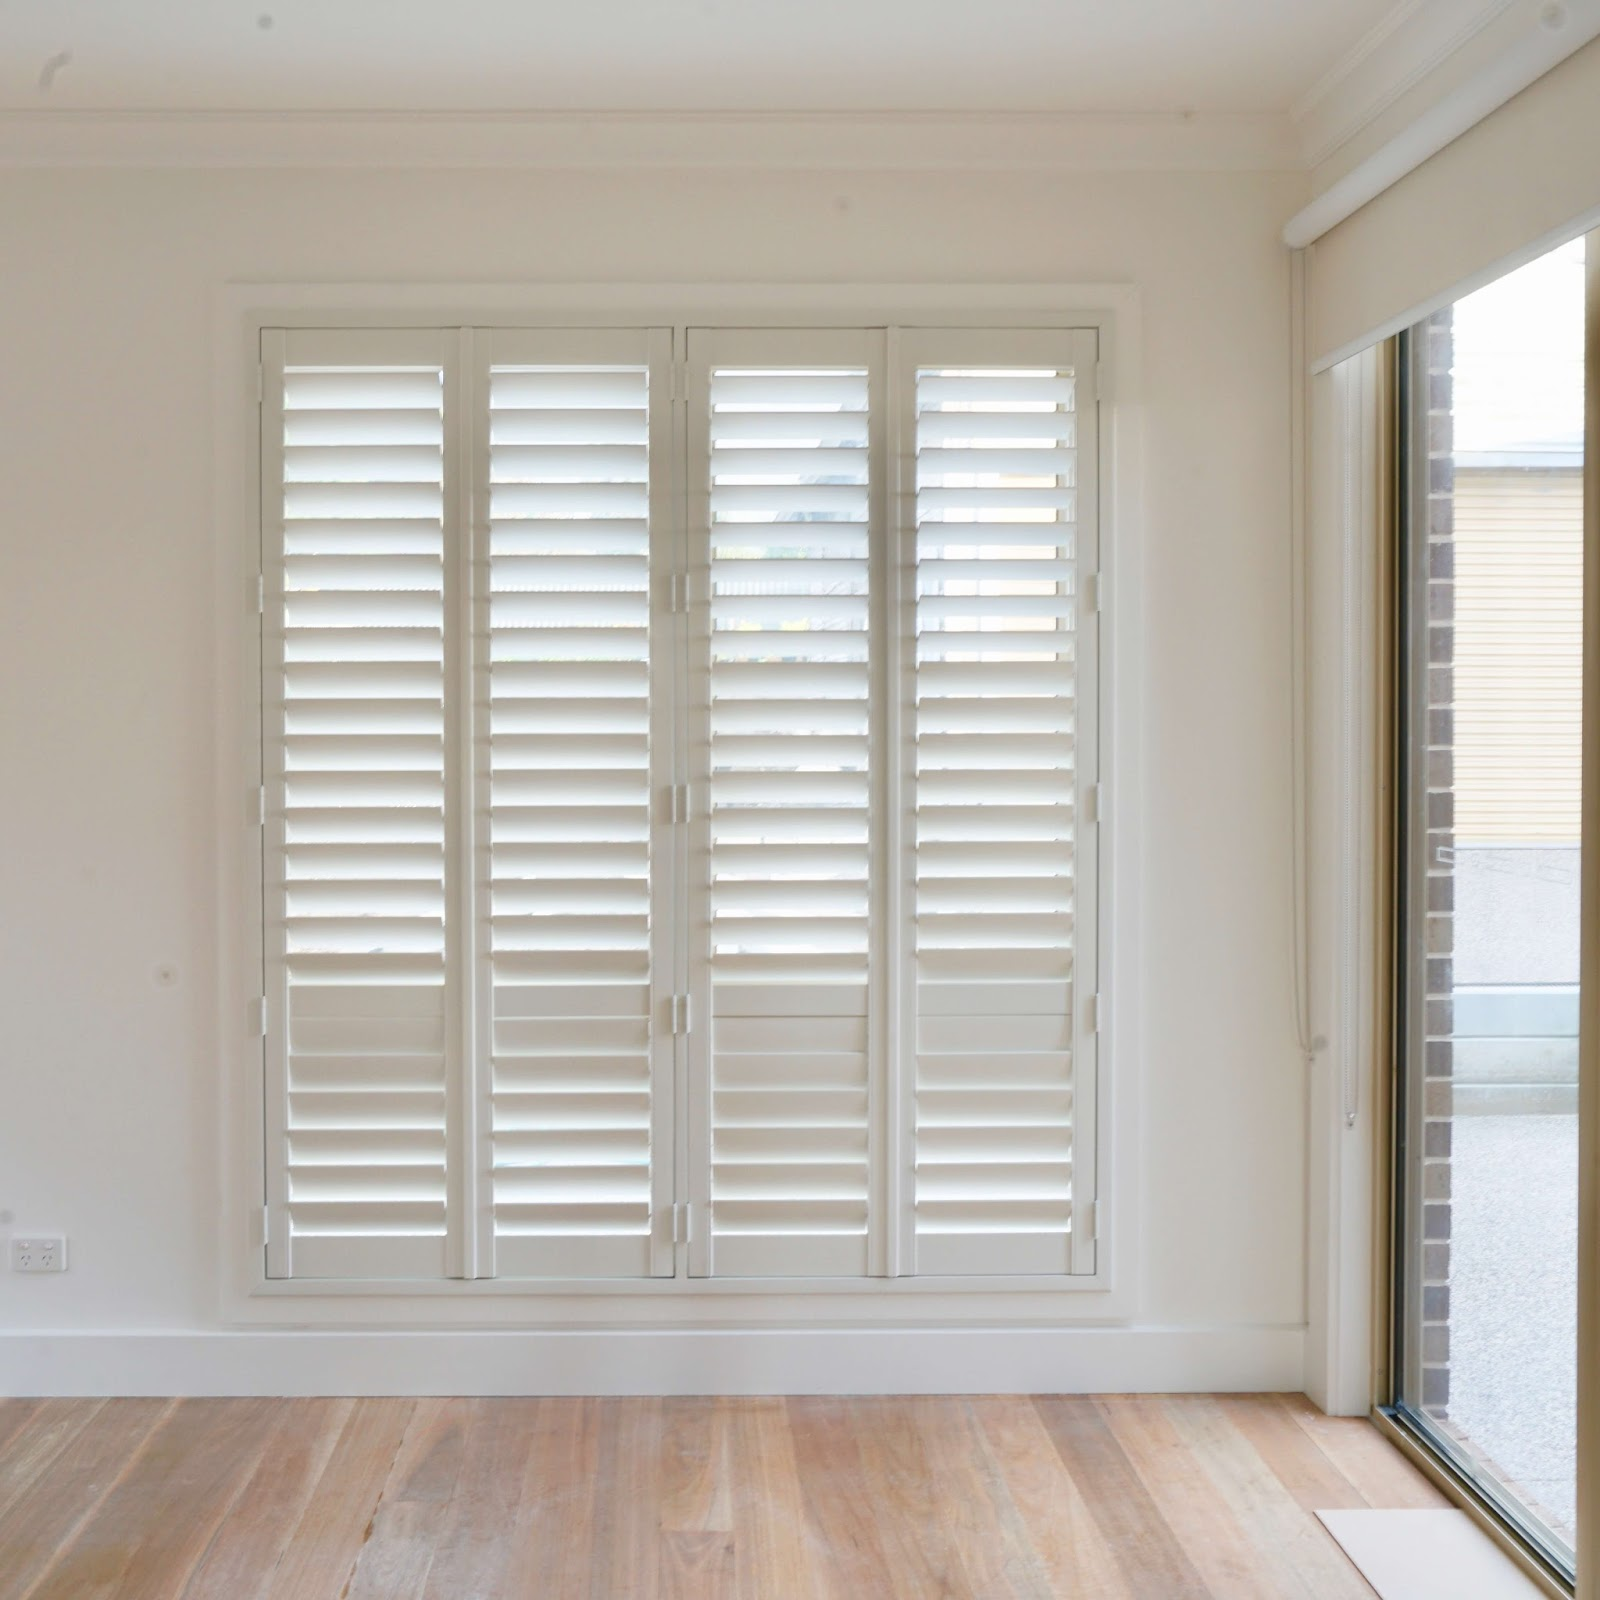 White Teak Plantation Shutters installed over a window next to a sliding door.